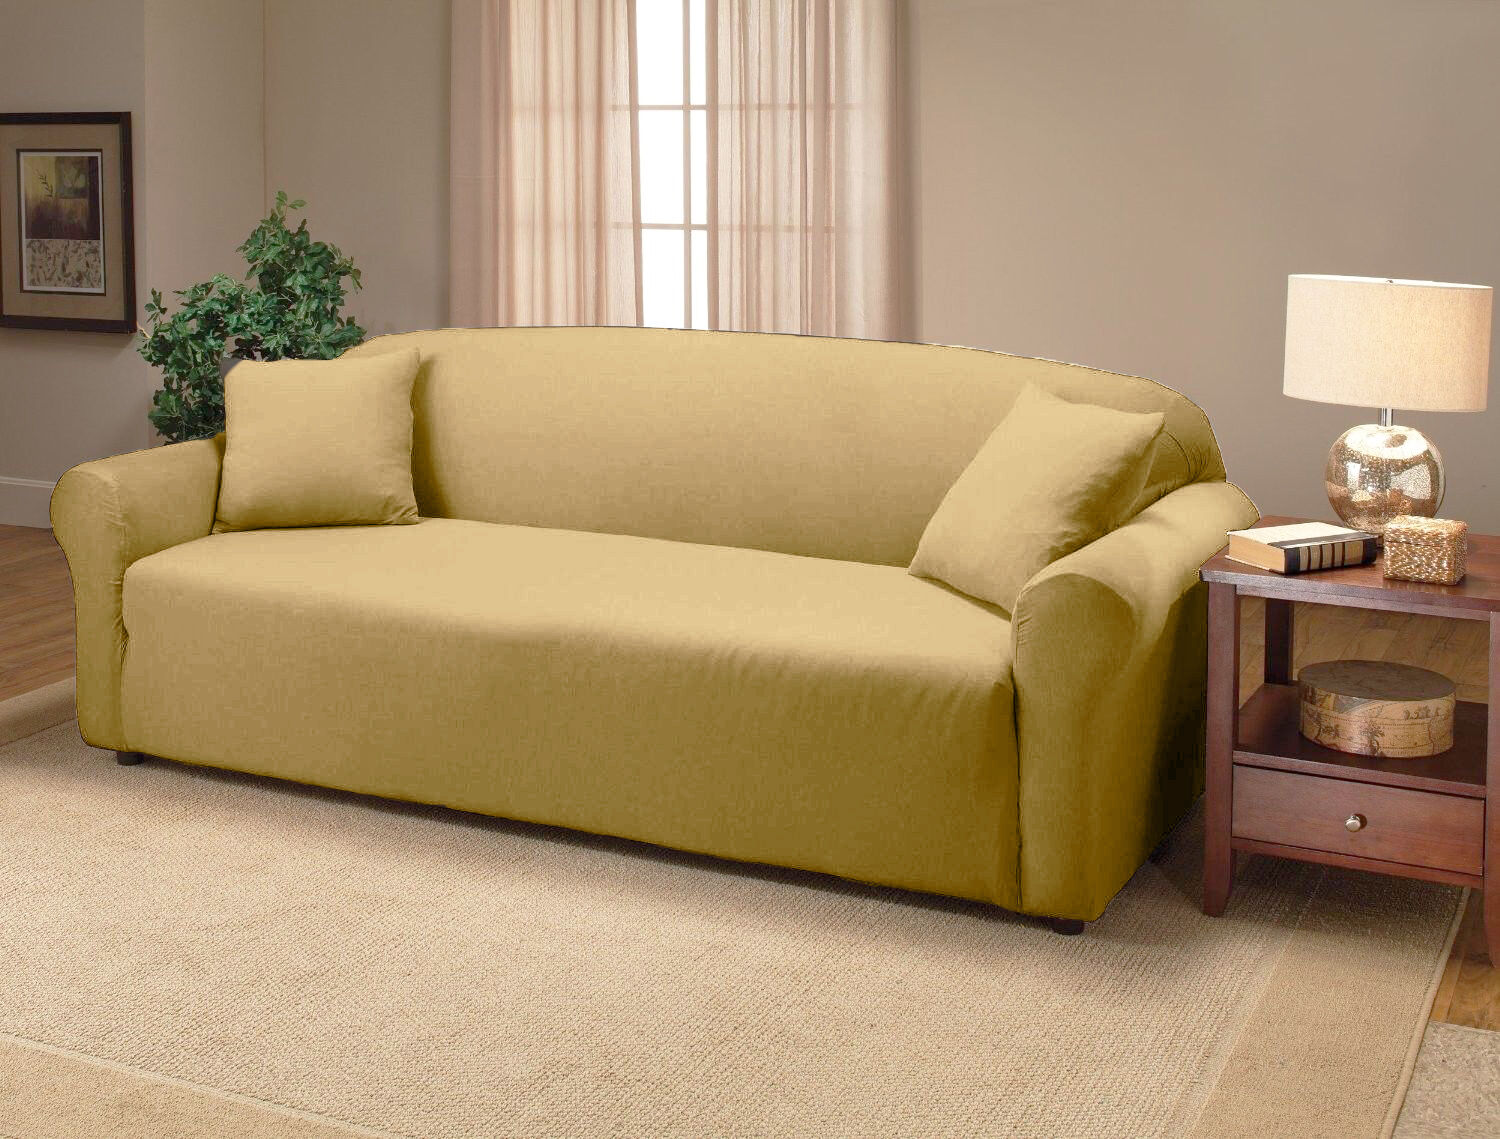 Linen Color Jersey Sofa Stretch Slipcover Couch Cover